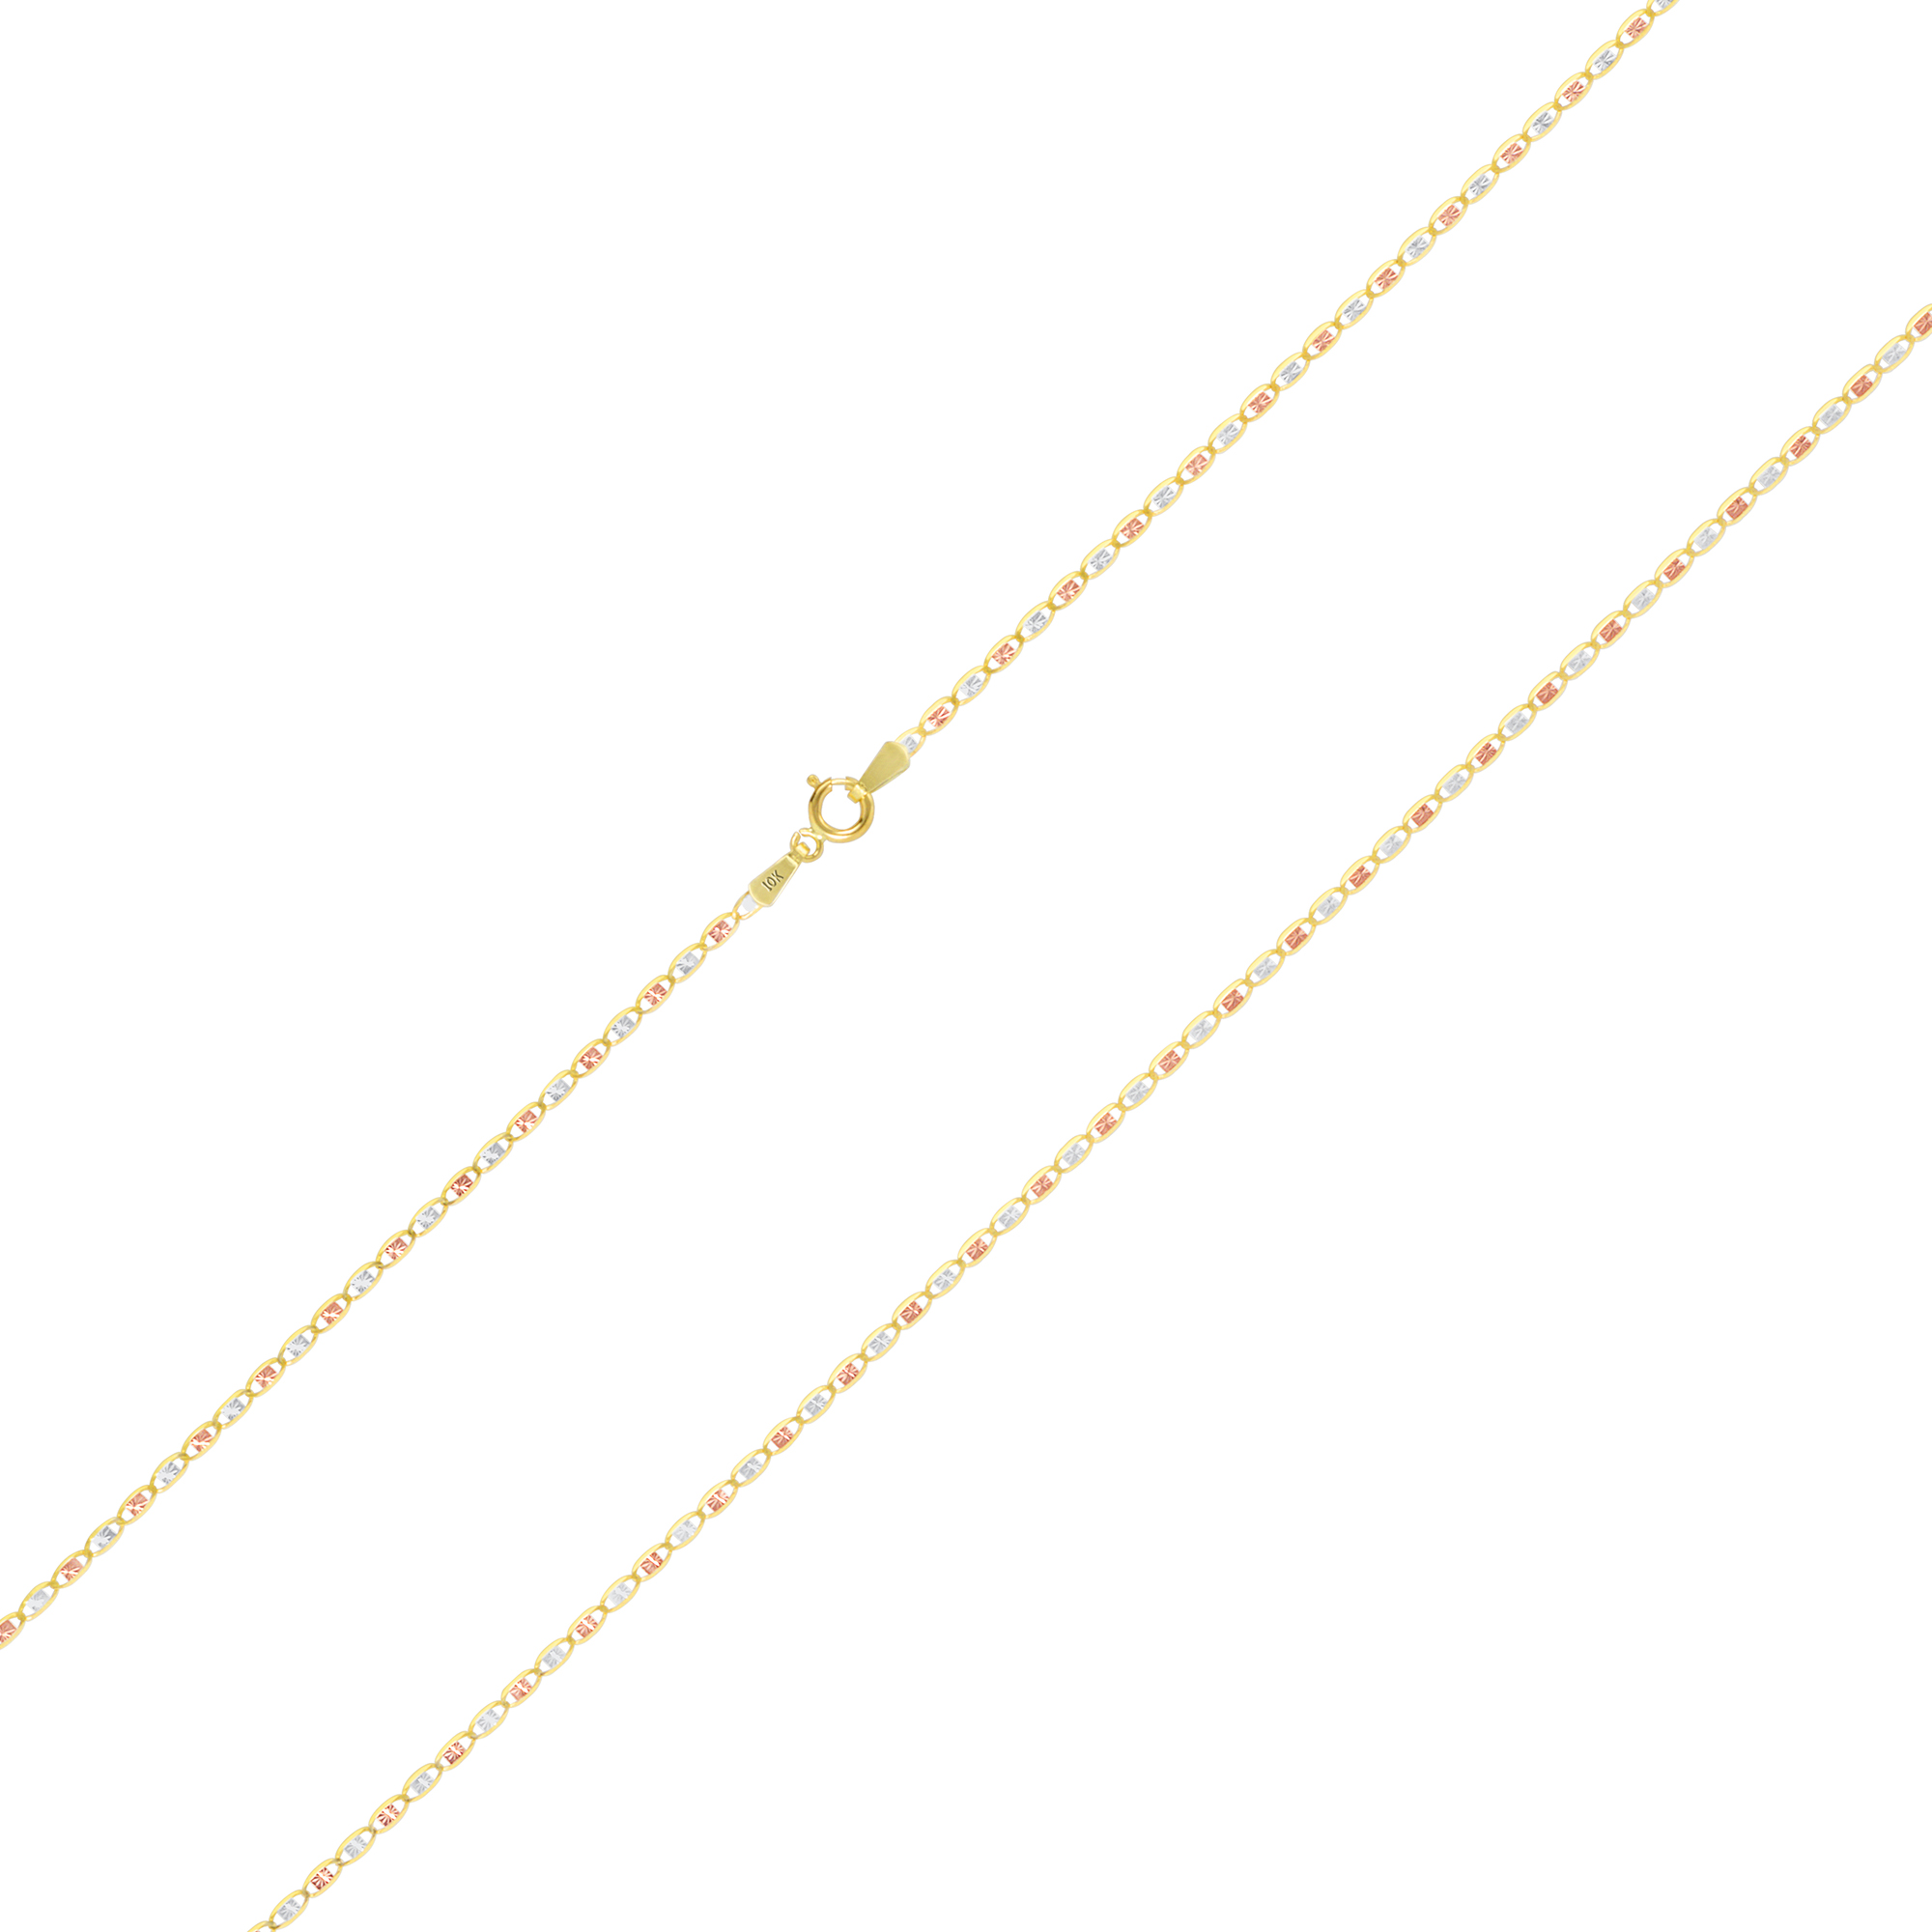 10K-Solid-Tri-Yellow-Rose-White-Gold-Thin-1-5mm-Valentino-Chain-Necklace-16-034-24-034 thumbnail 18